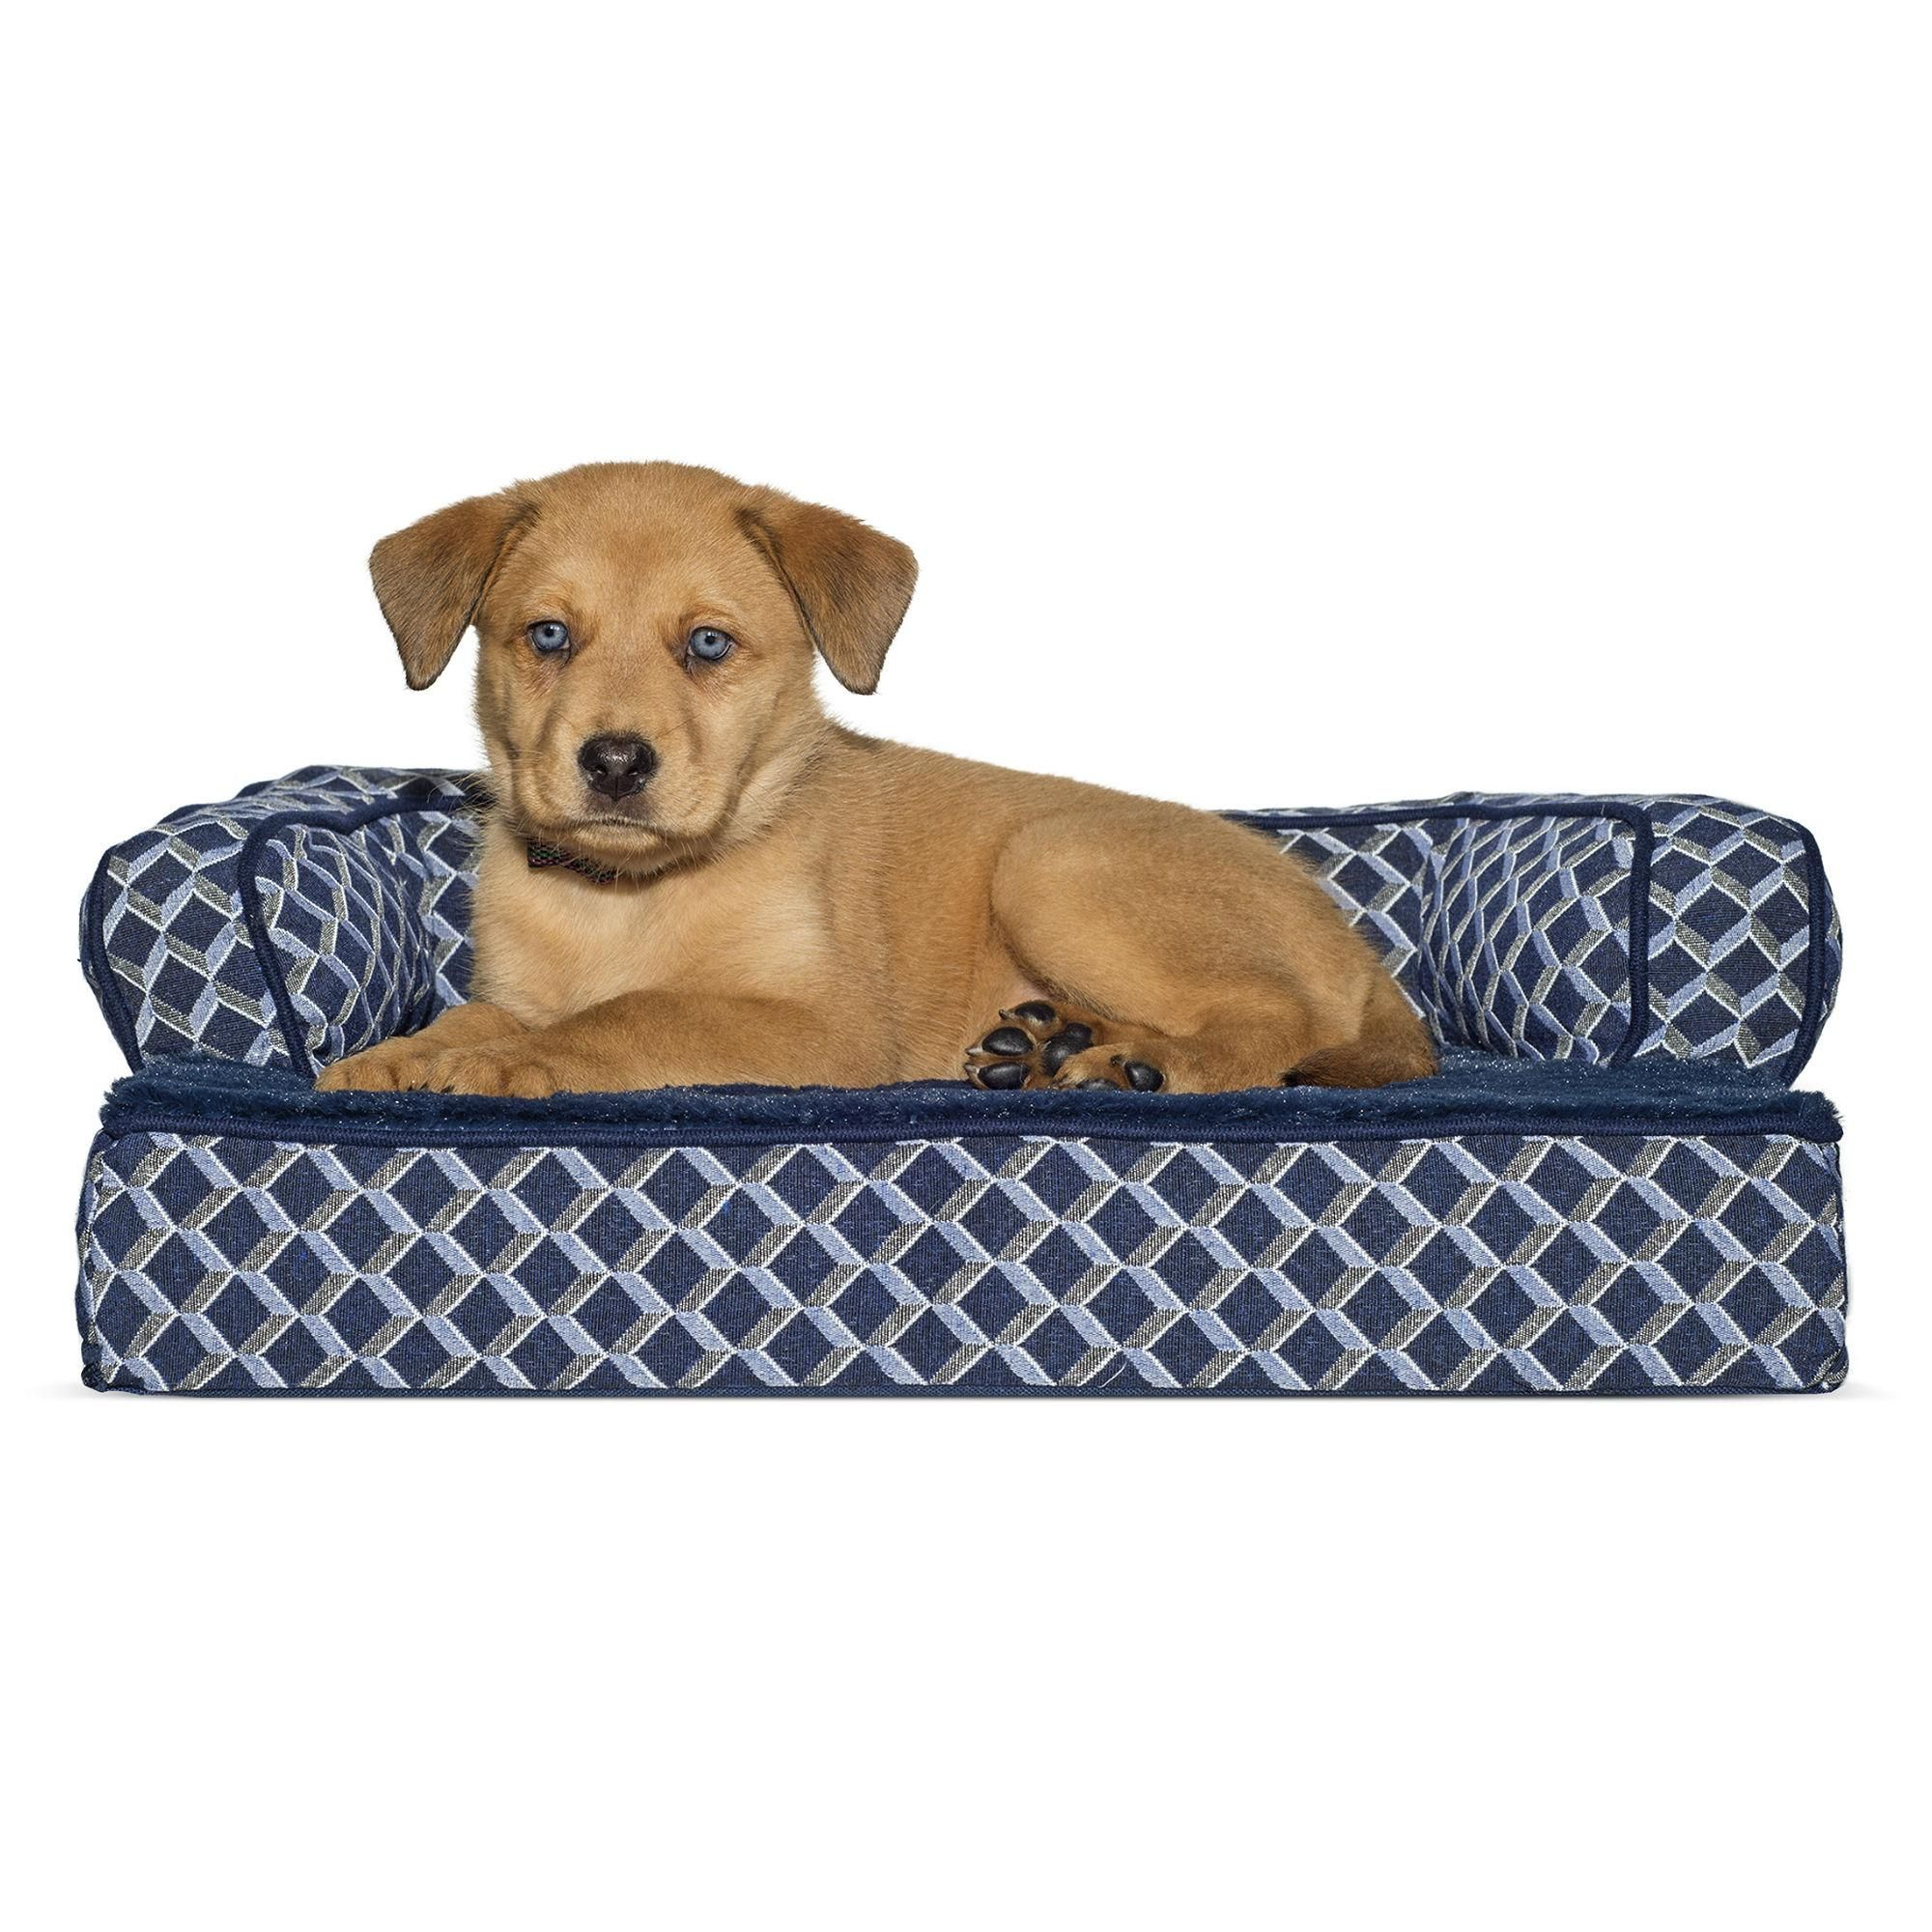 FurHaven Plush & Decor Orthopedic SofaStyle Pet Bed